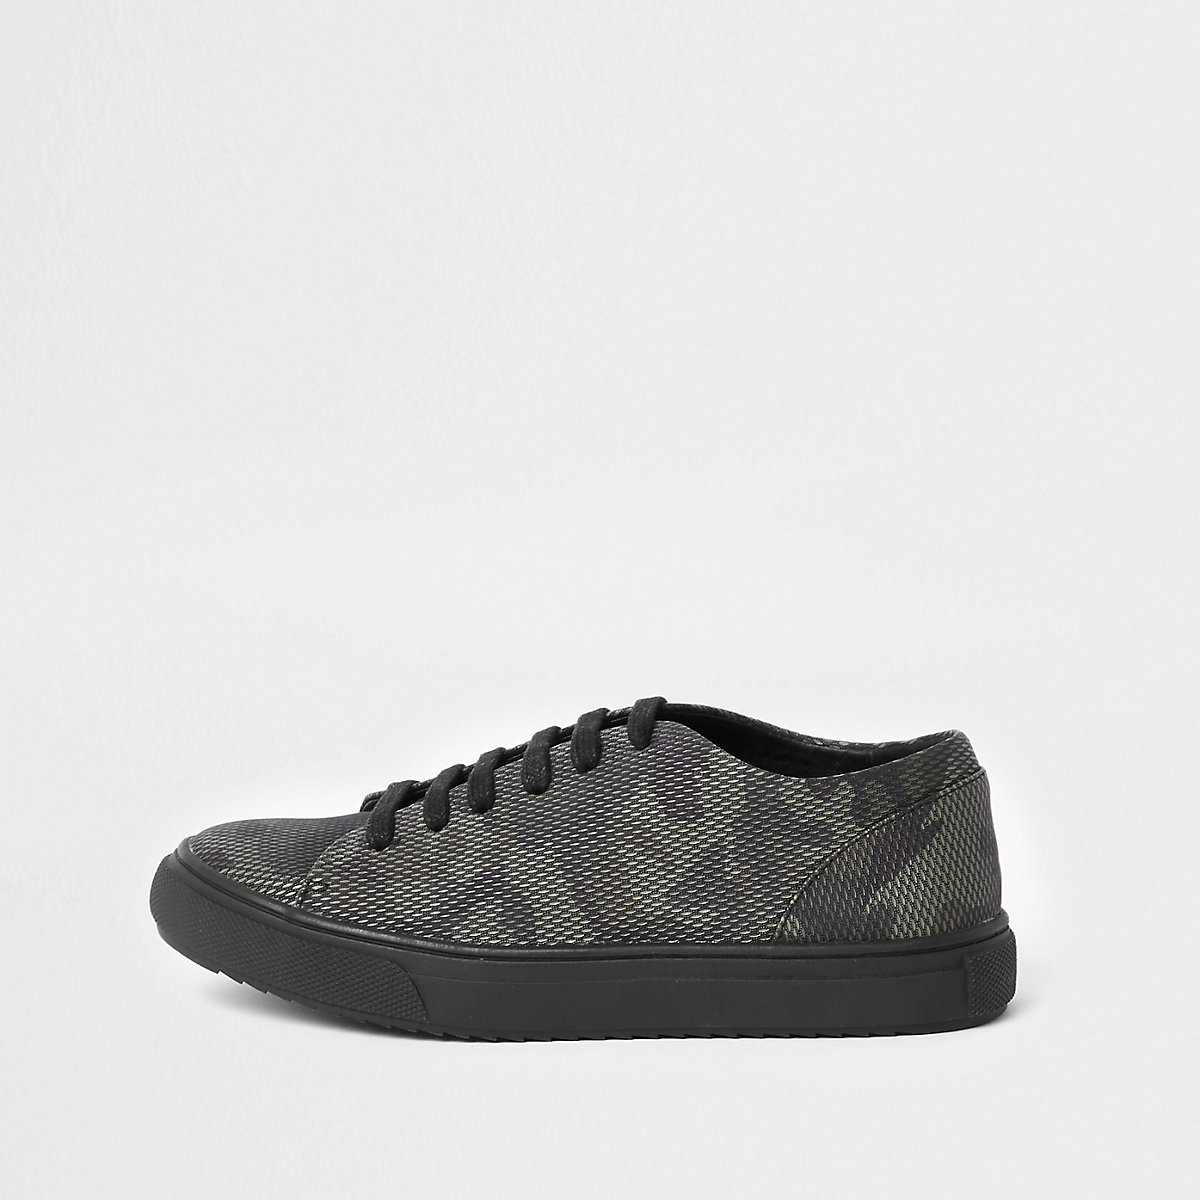 Sneakers mit Camouflage-Muster